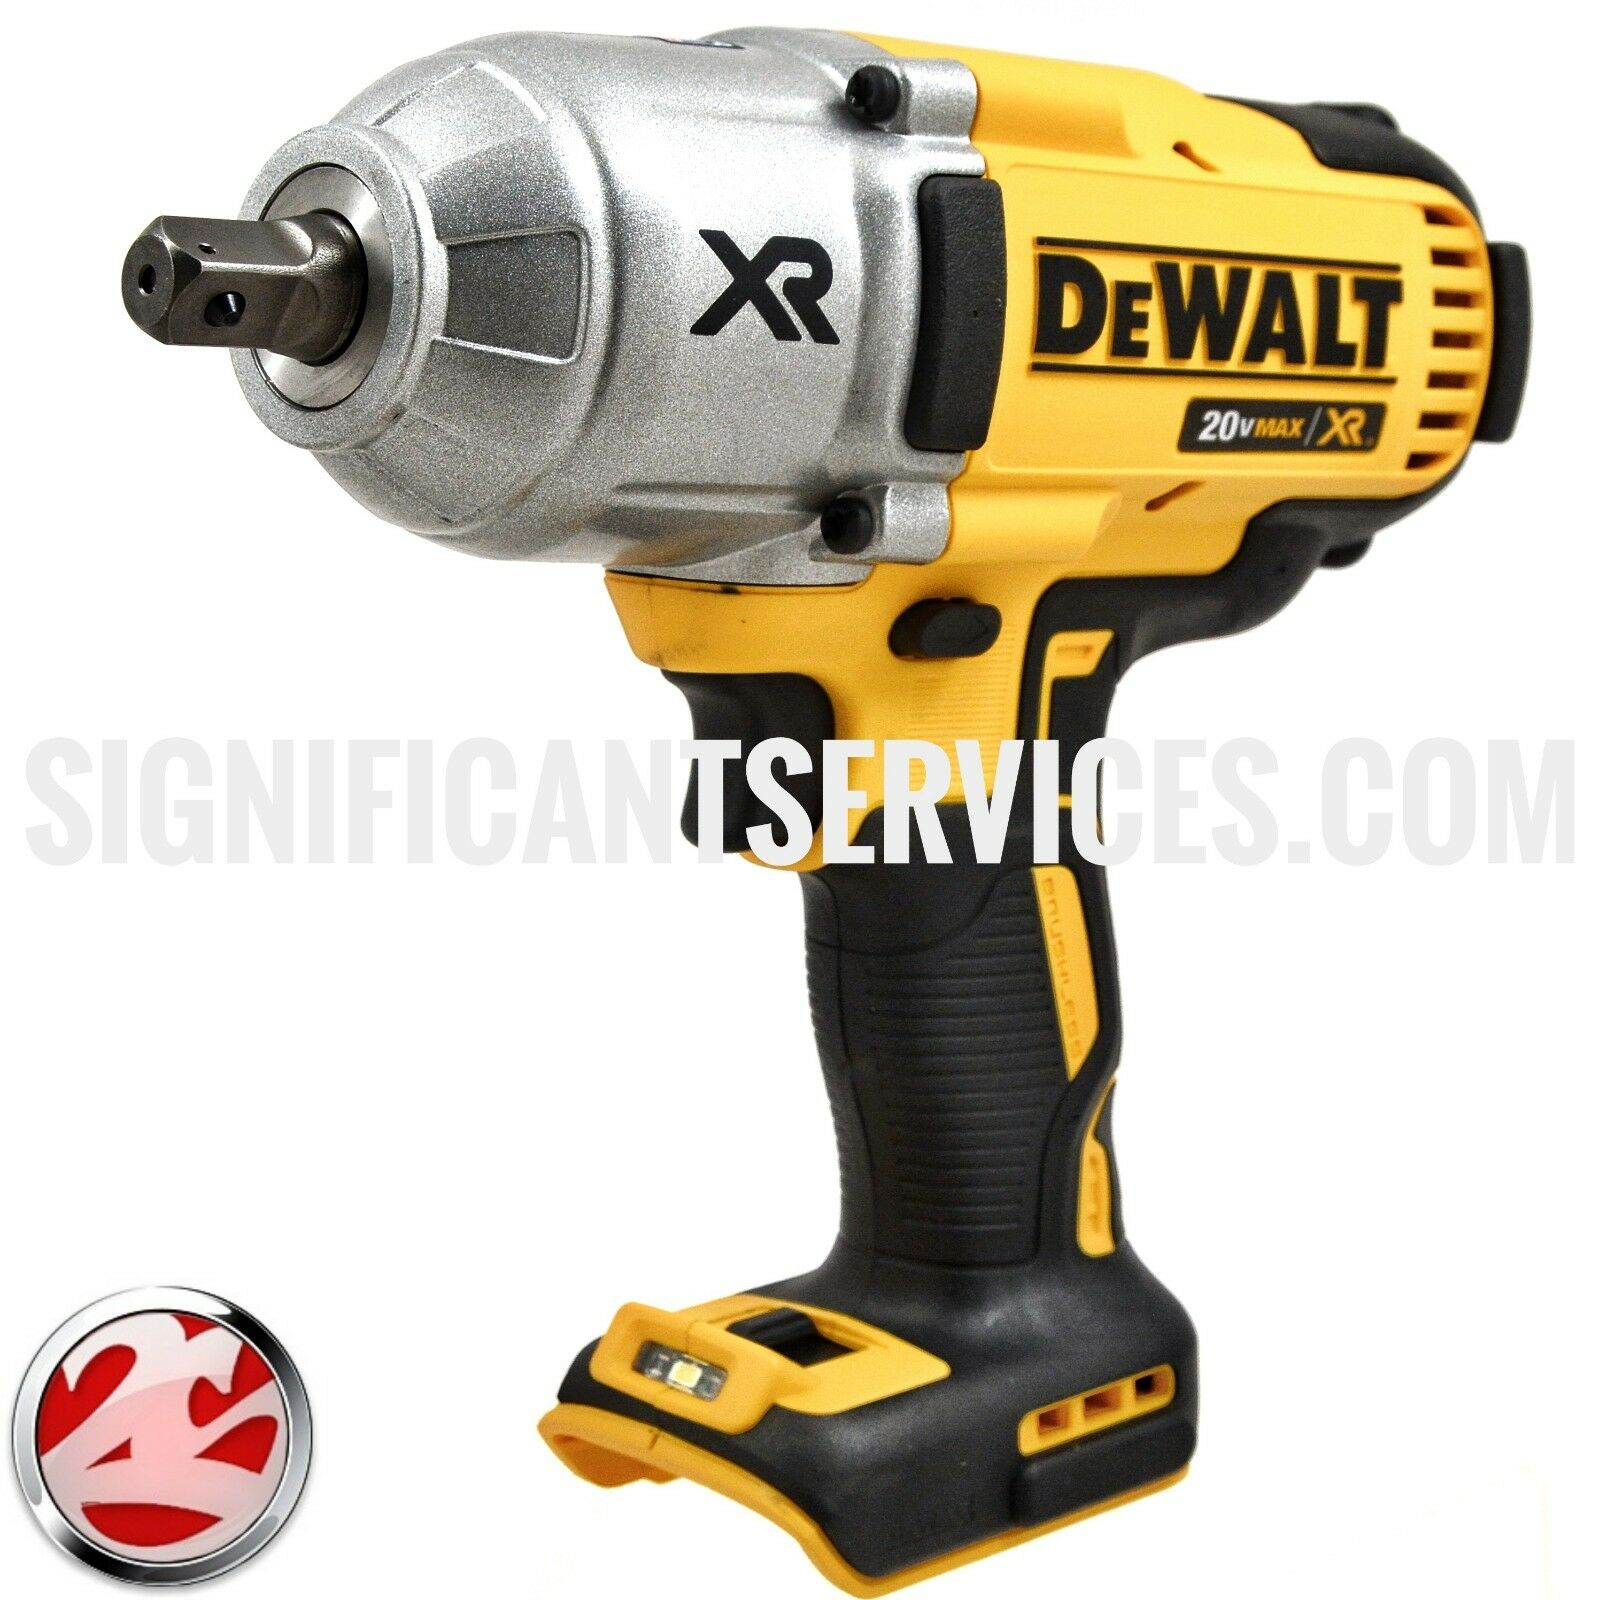 DeWALT DCF899B XR 20V MAX Brushless High Torque Impact Wrench 1/2